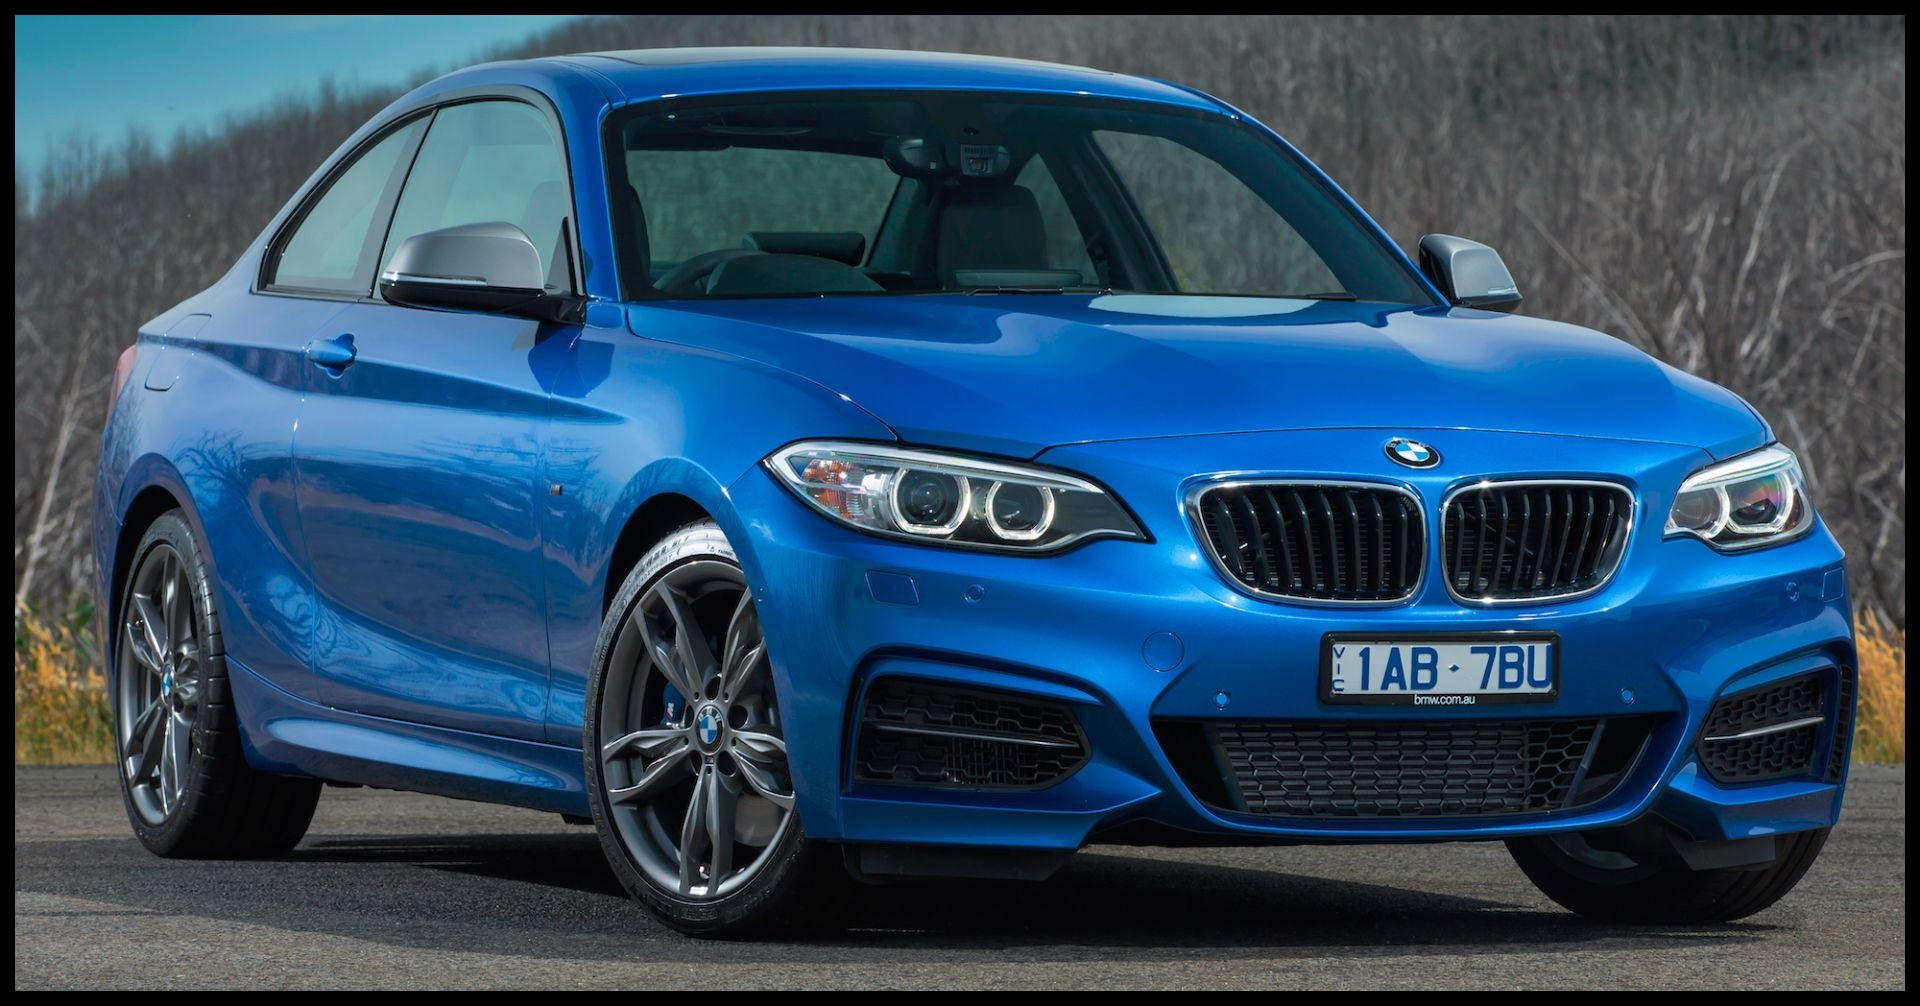 Bmw 2 Series M Sport Price Elegant 2016 Bmw 2 Series the Bmw that Does It